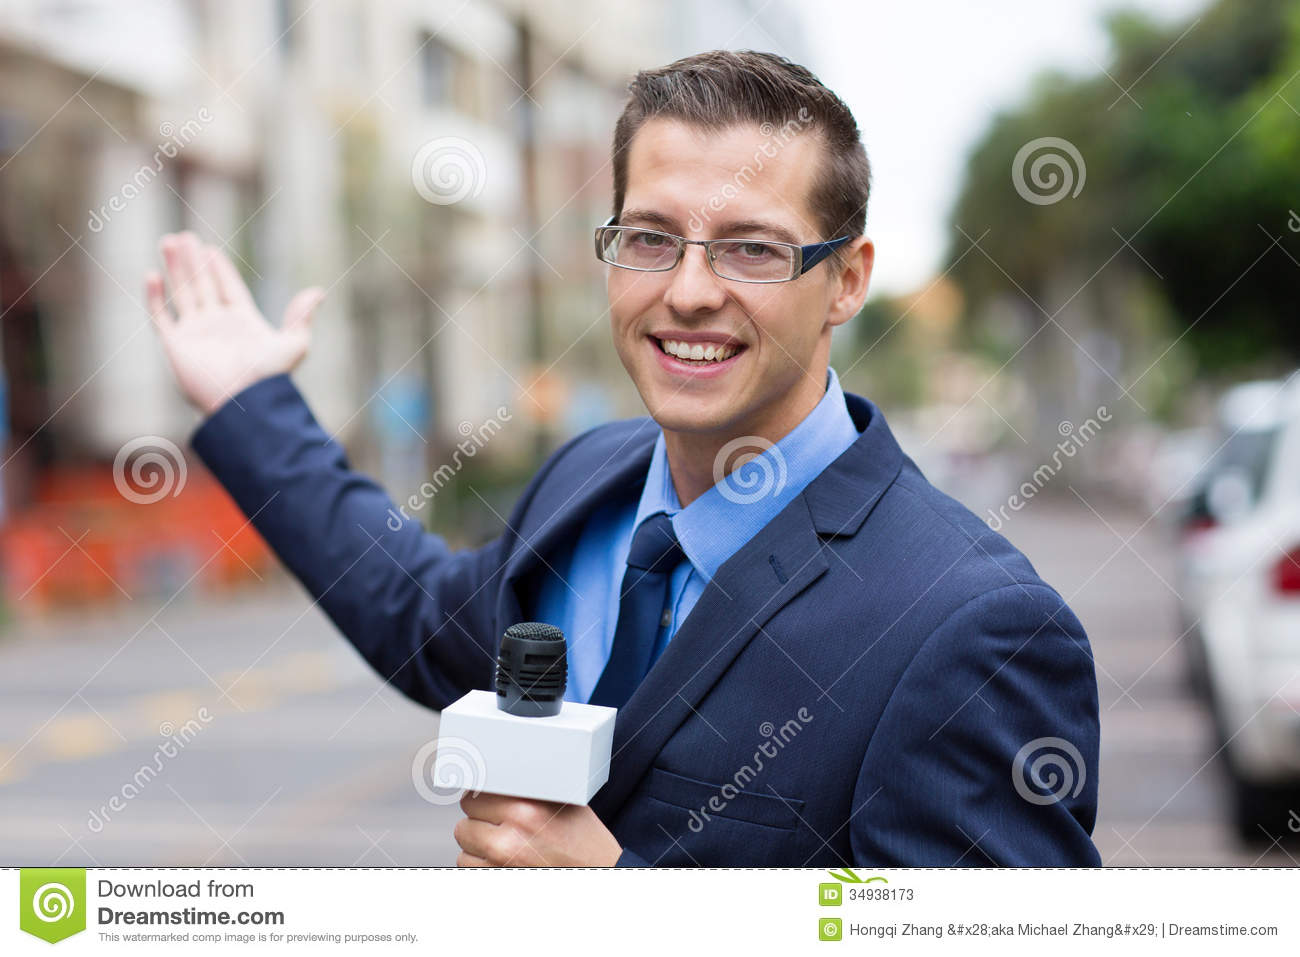 News Reporter Broadcasting Stock Photos - Image: 34938173